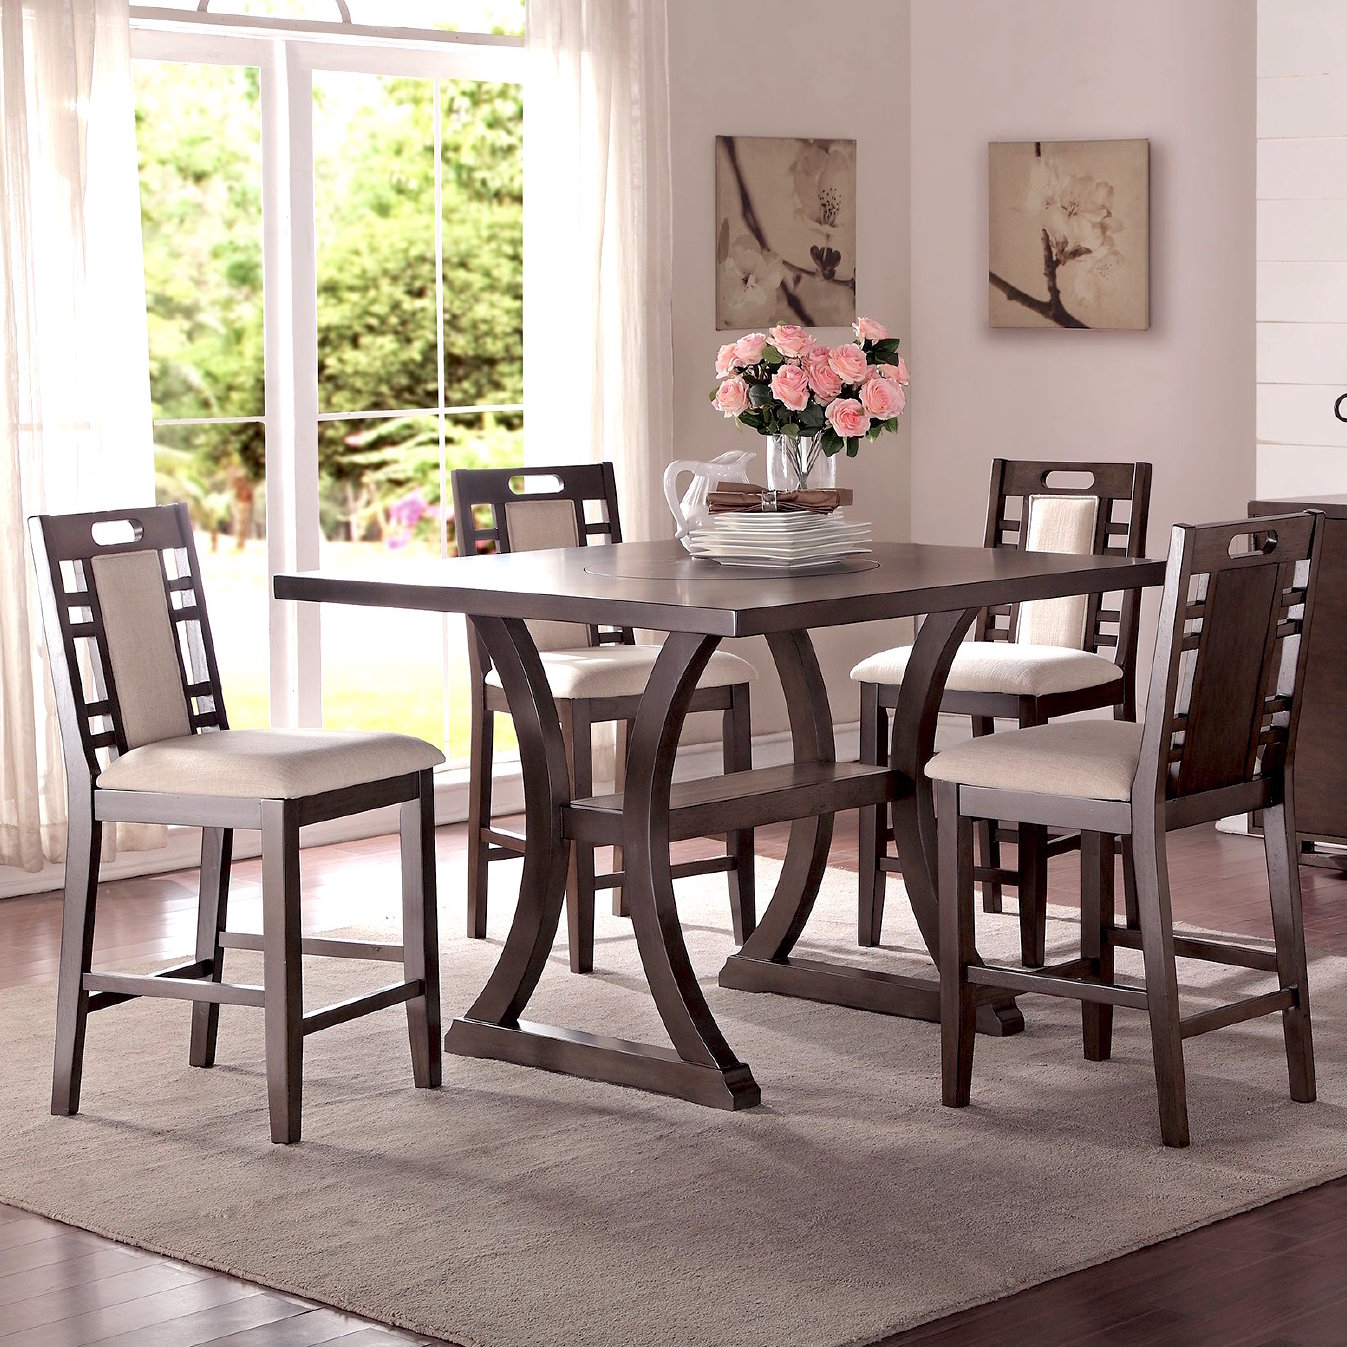 Joss & Main Pertaining To Goodman 5 Piece Solid Wood Dining Sets (Set Of 5) (View 10 of 20)